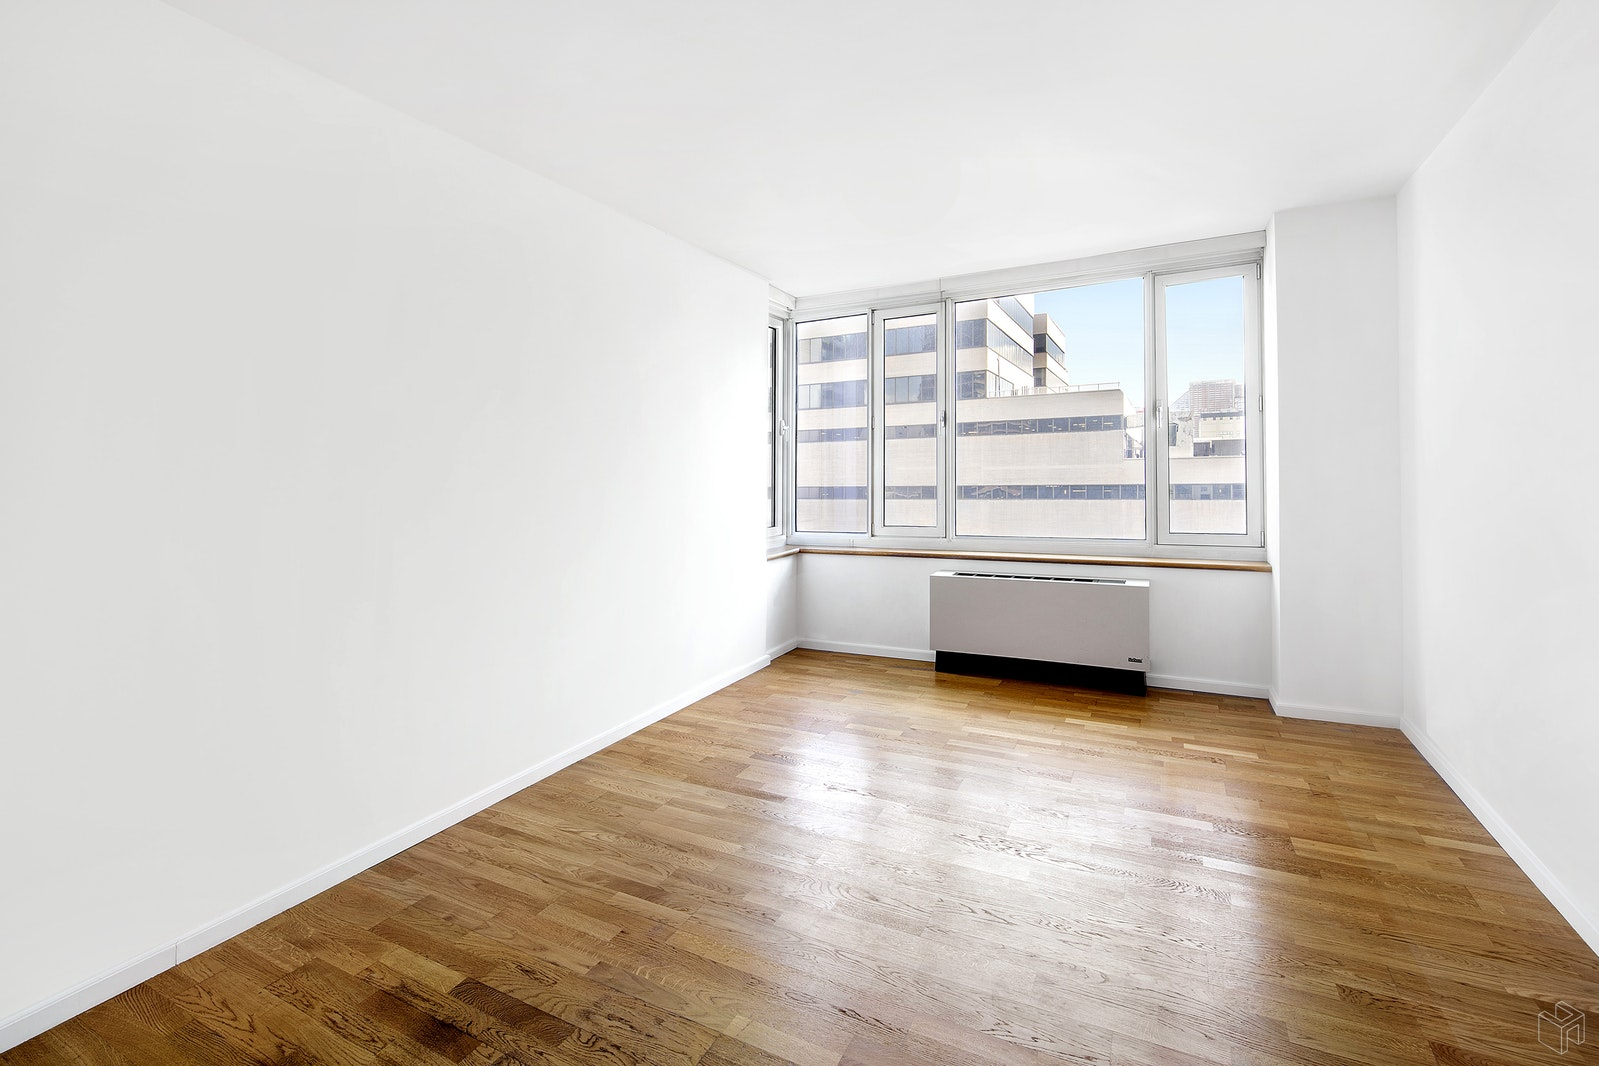 635 WEST 42ND STREET 6B, Midtown West, $855,000, Web #: 1508015